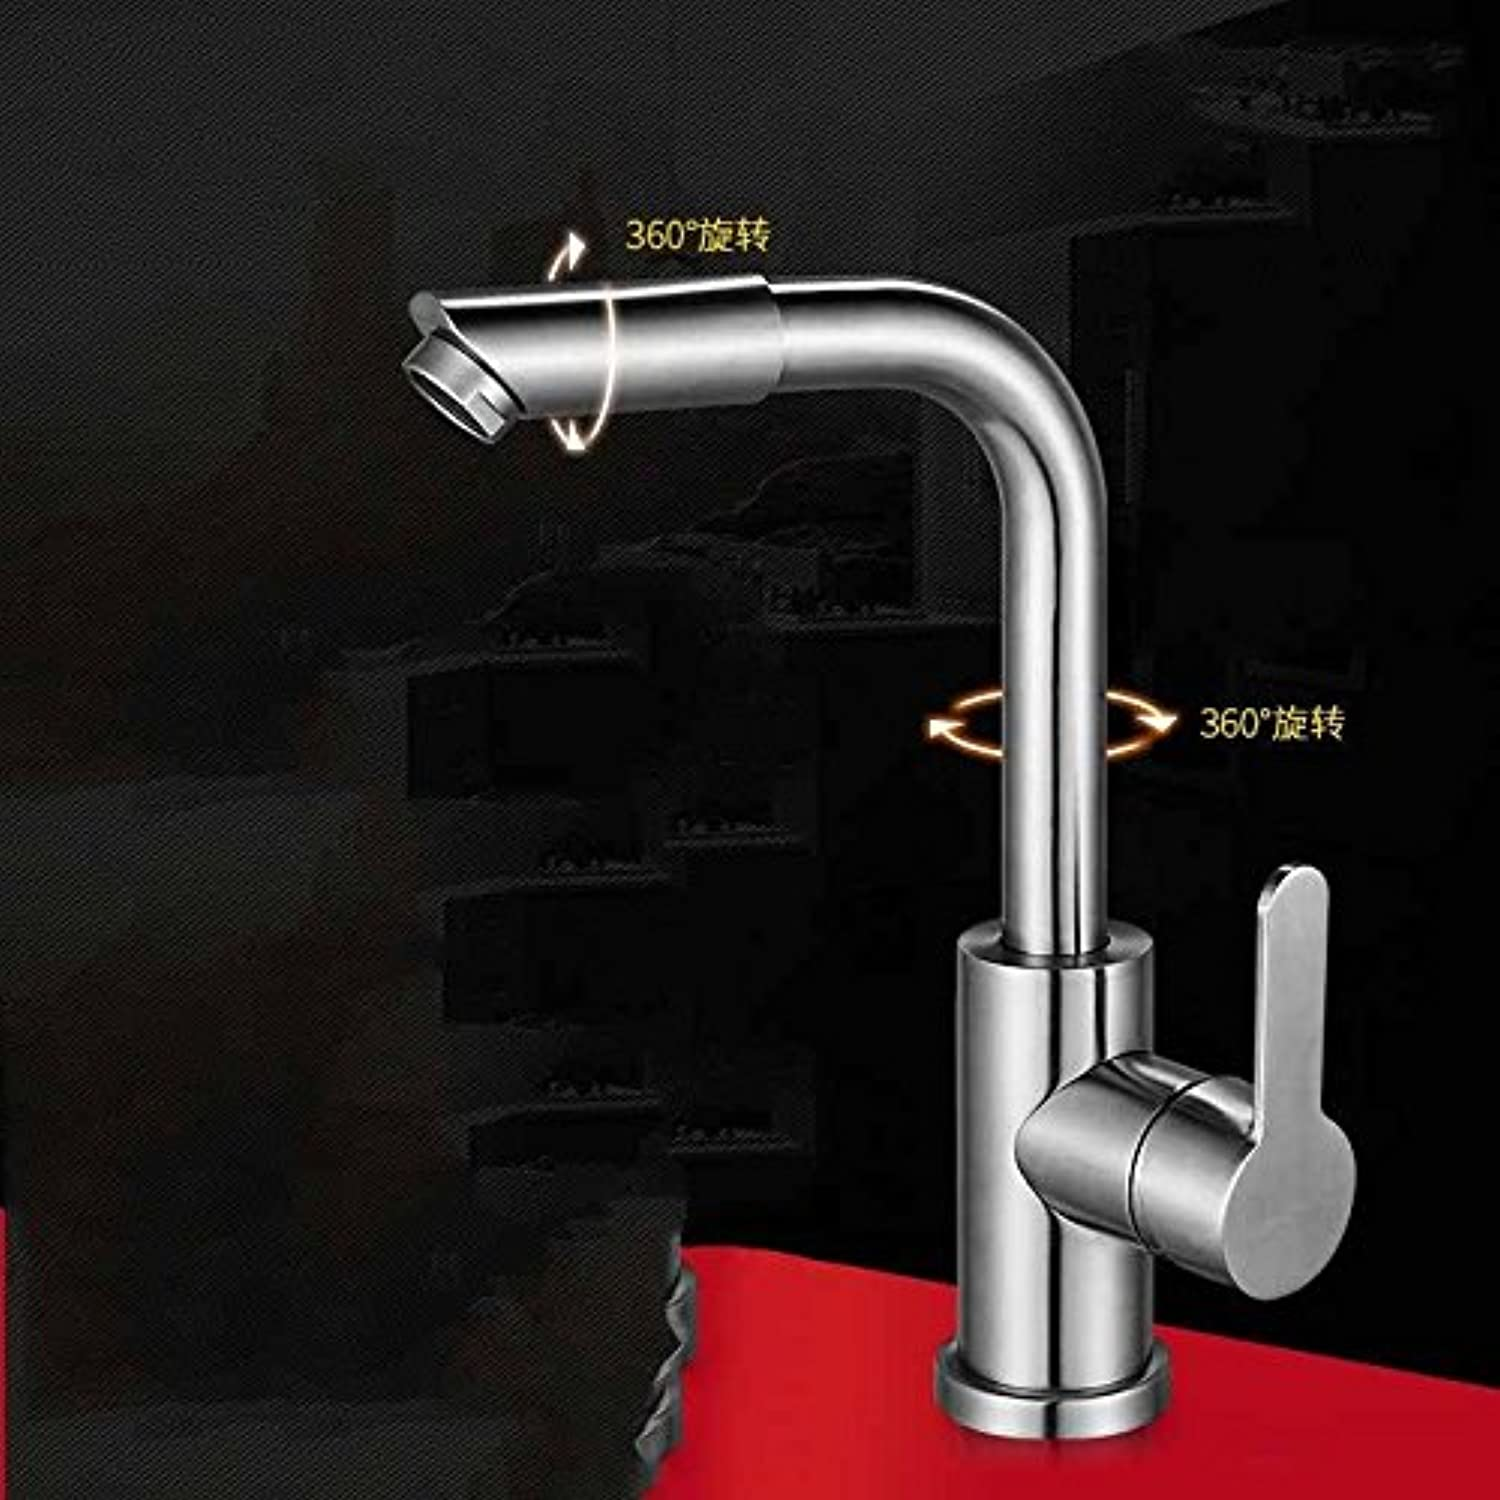 MulFaucet Faucet Water tap Taps Swivel Hoses Kitchen hot and Cold Copper redatable Single Handle Single Hole F